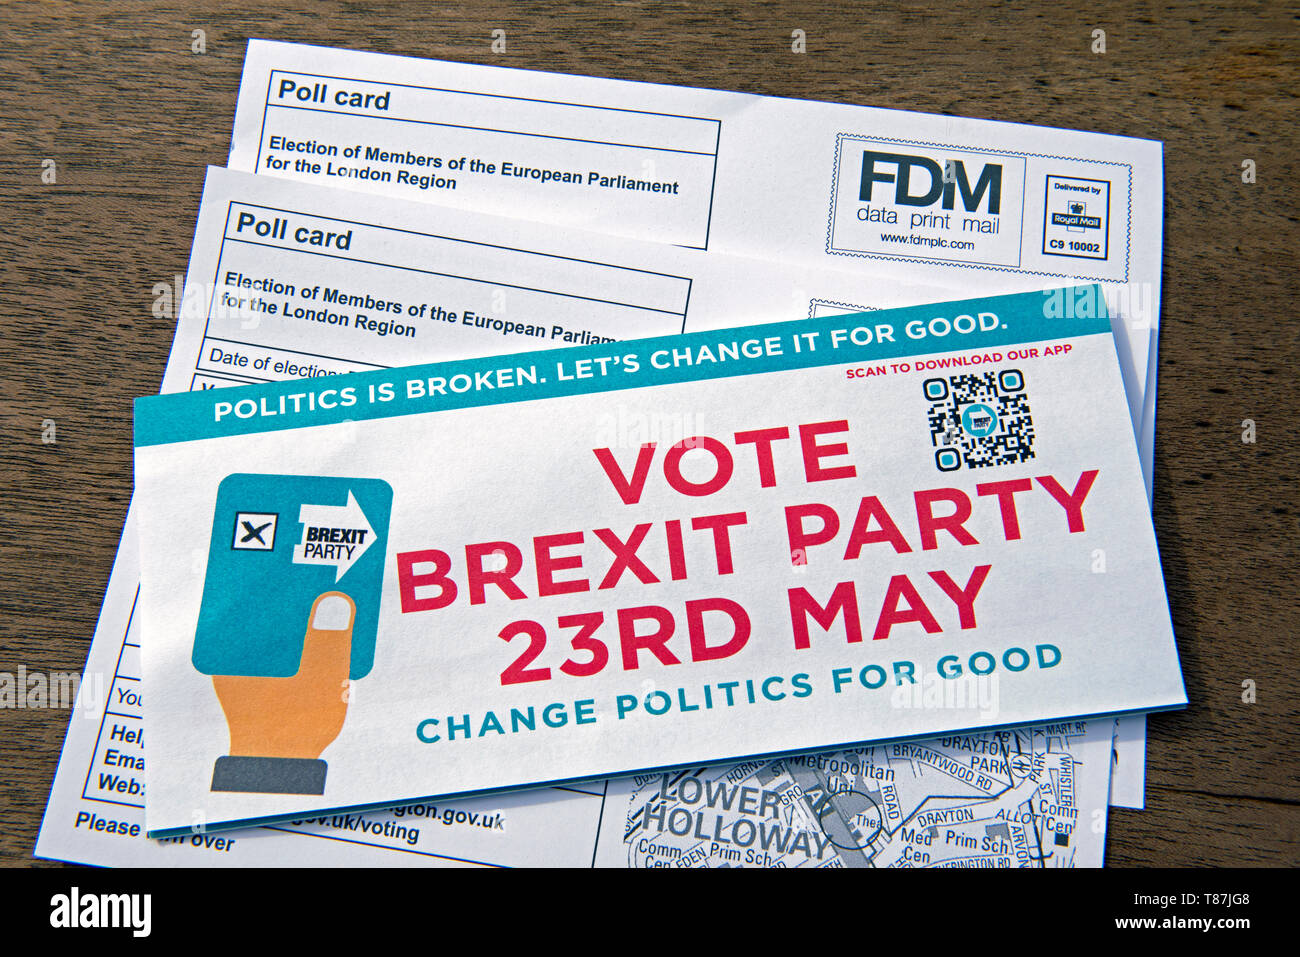 EU Election Brexit Party Leaflet and poll cards for the London Region of the European Parliament 2019. Islington North - Stock Image